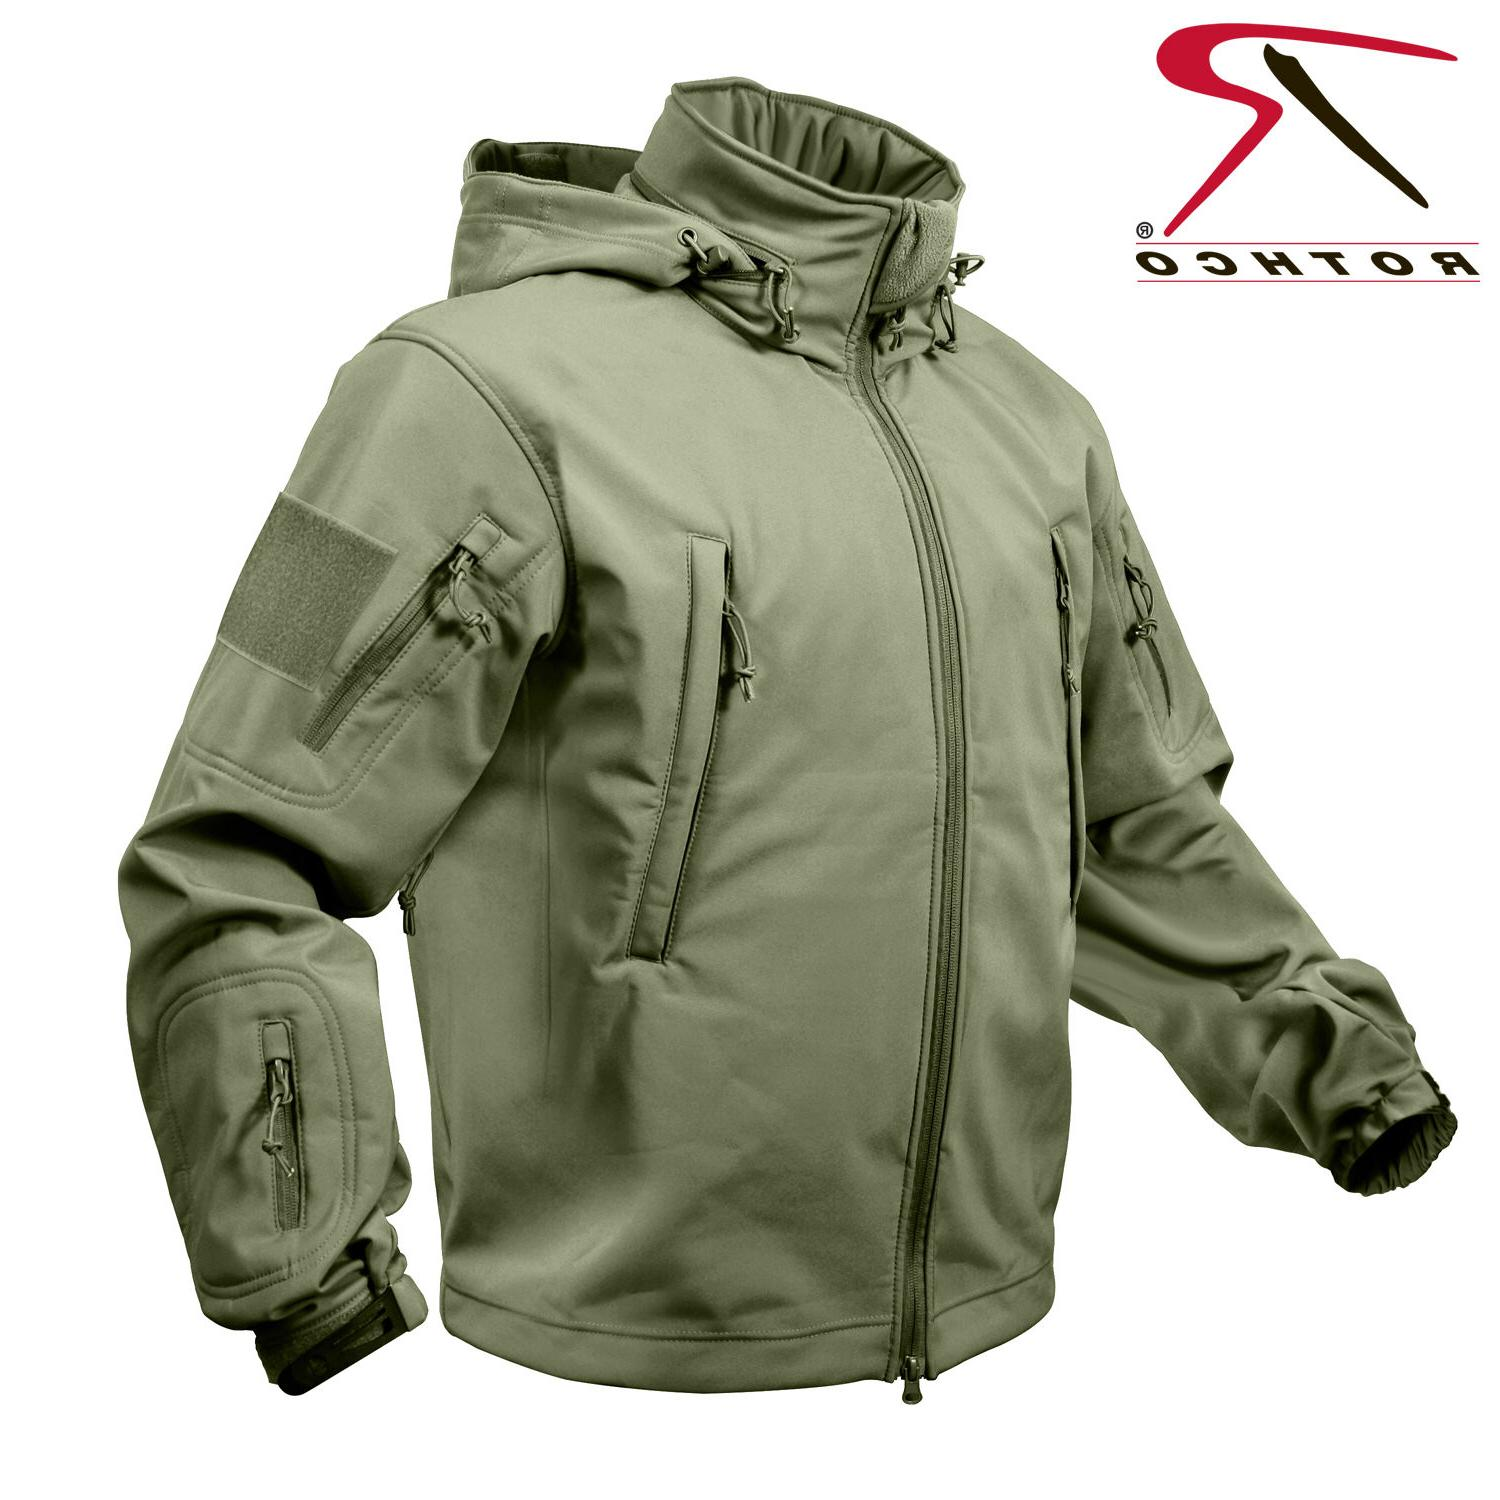 Rothco Men's Special OPS Tactical Soft Shell Jacket Waterpro